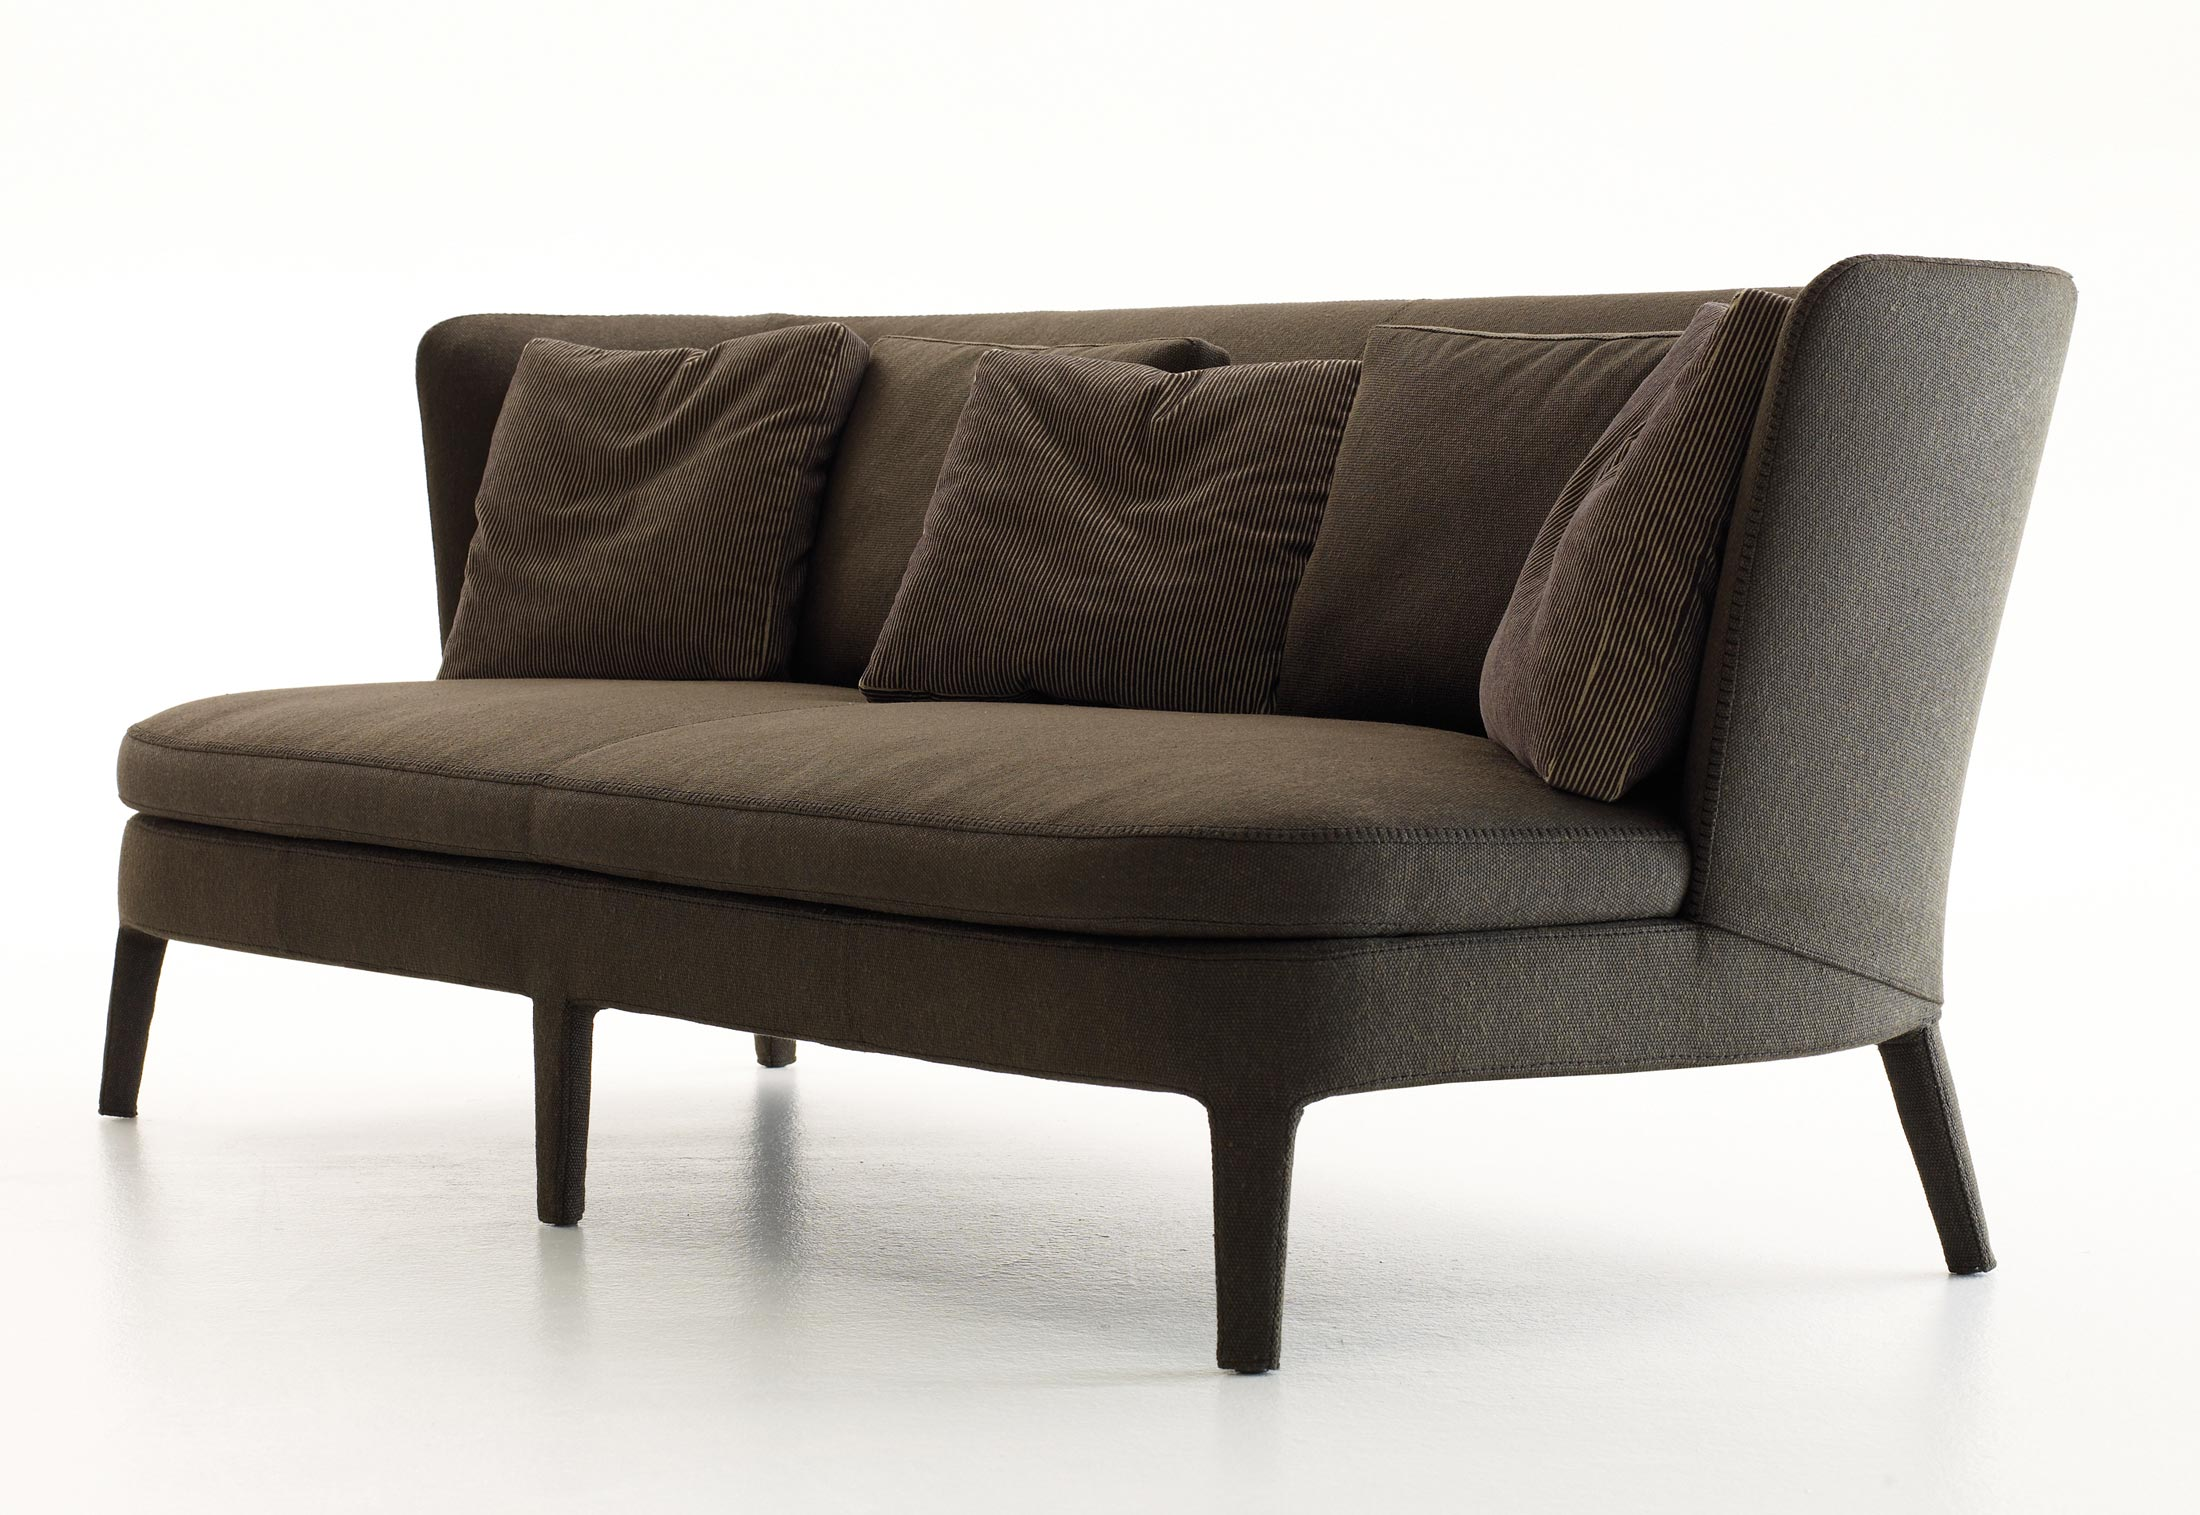 Maxalto Sofa Rund Maxalto Sofa Review Home Co